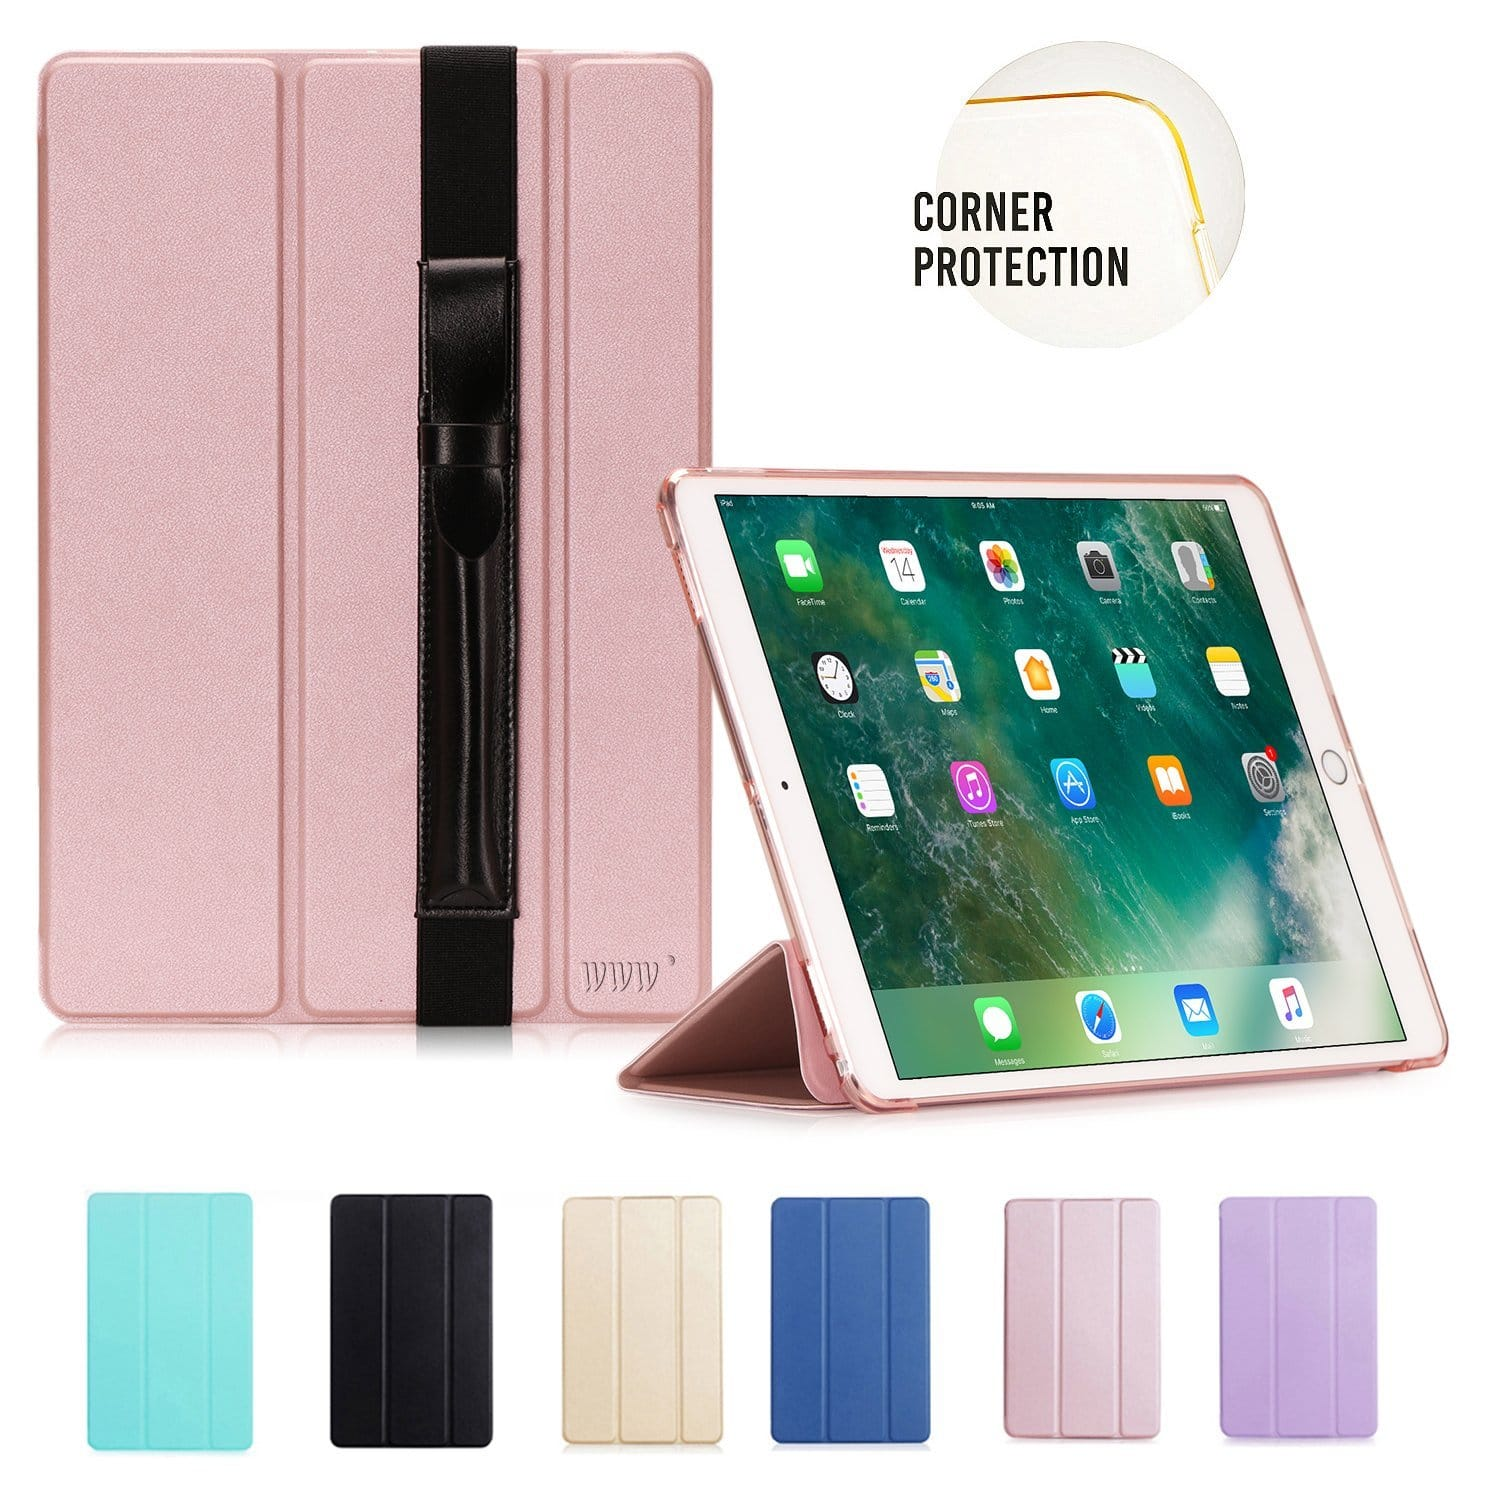 iPad Pro 10.5 Case with Apple Pencil Holder $3.9 @Amazon